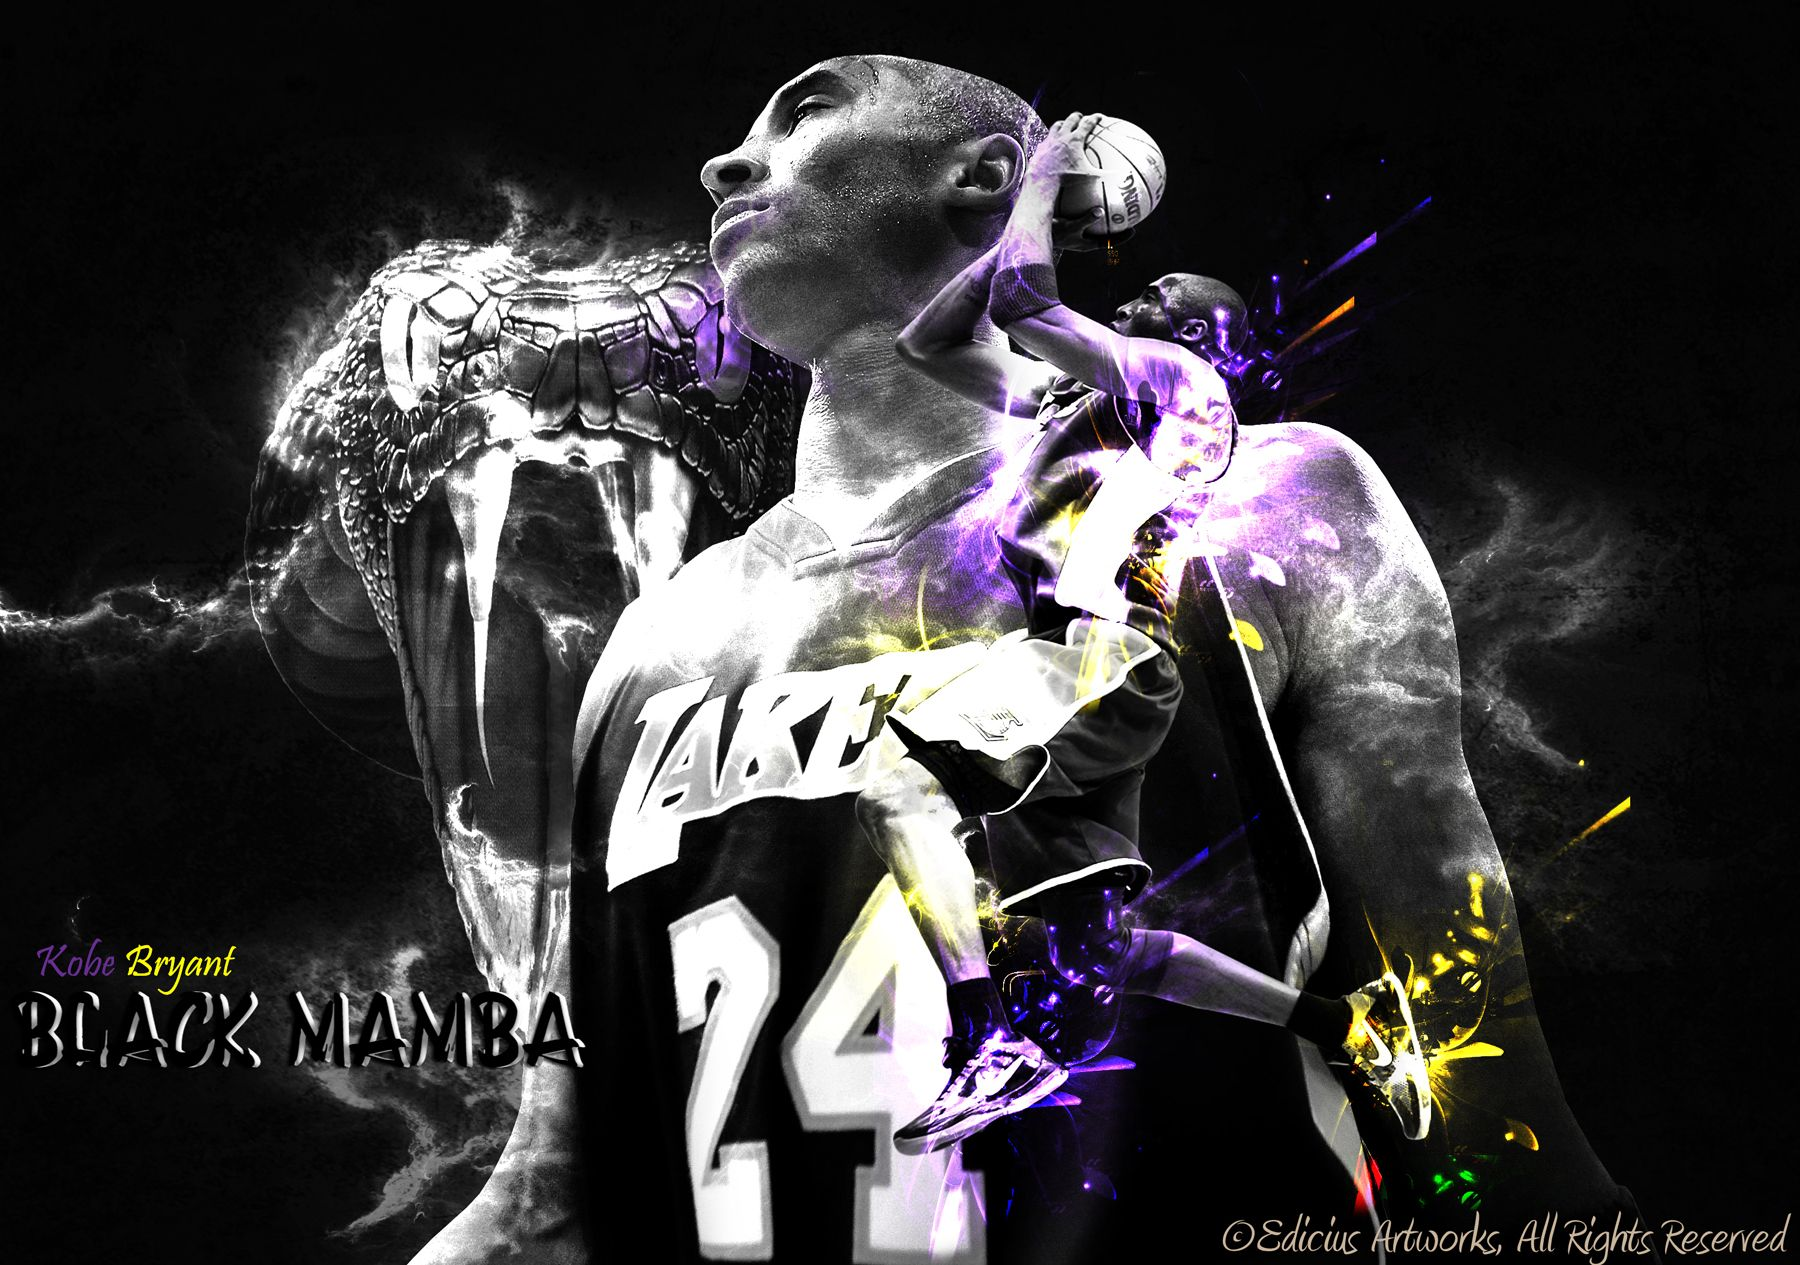 Kobe Bryant Black Mamba This Is By Far The Best Wallpaper I Have Done Kobe Bryant Black Mamba Kobe Bryant Wallpaper Black Mamba